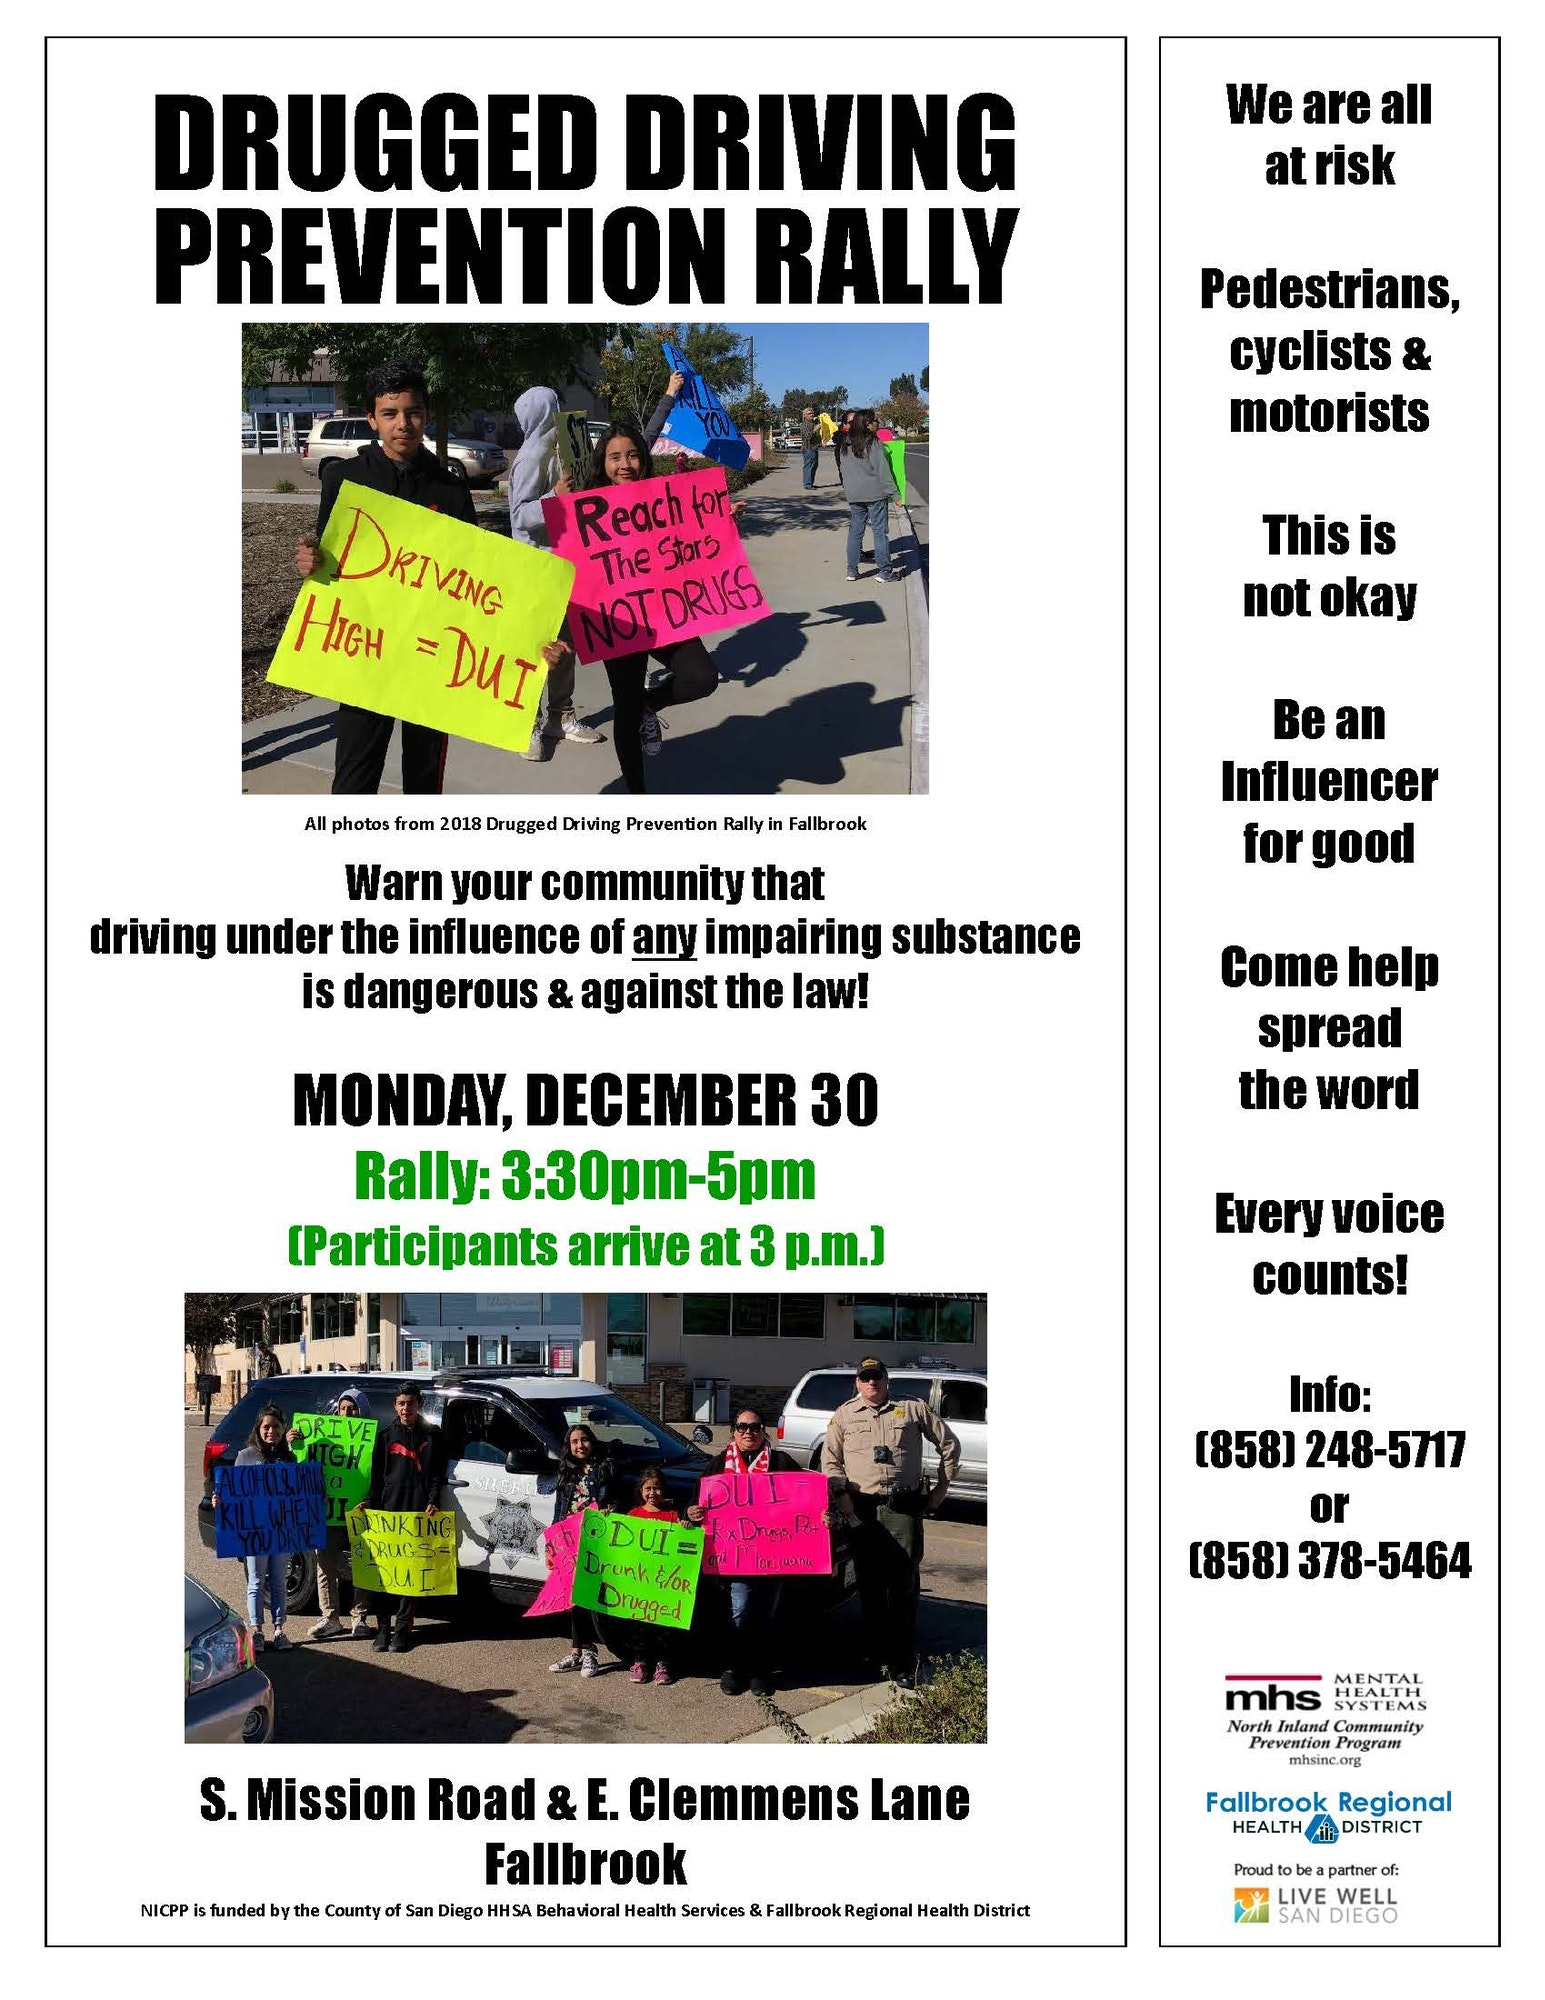 Flyer with pictures of youth rallying against drugged driving. Announcing a Drugged Driving Prevention Rally, December 30, 3:30pm-4:30pm at the intersection of S. Mission Rd. & E. Clemmens ln. in Fallbrook